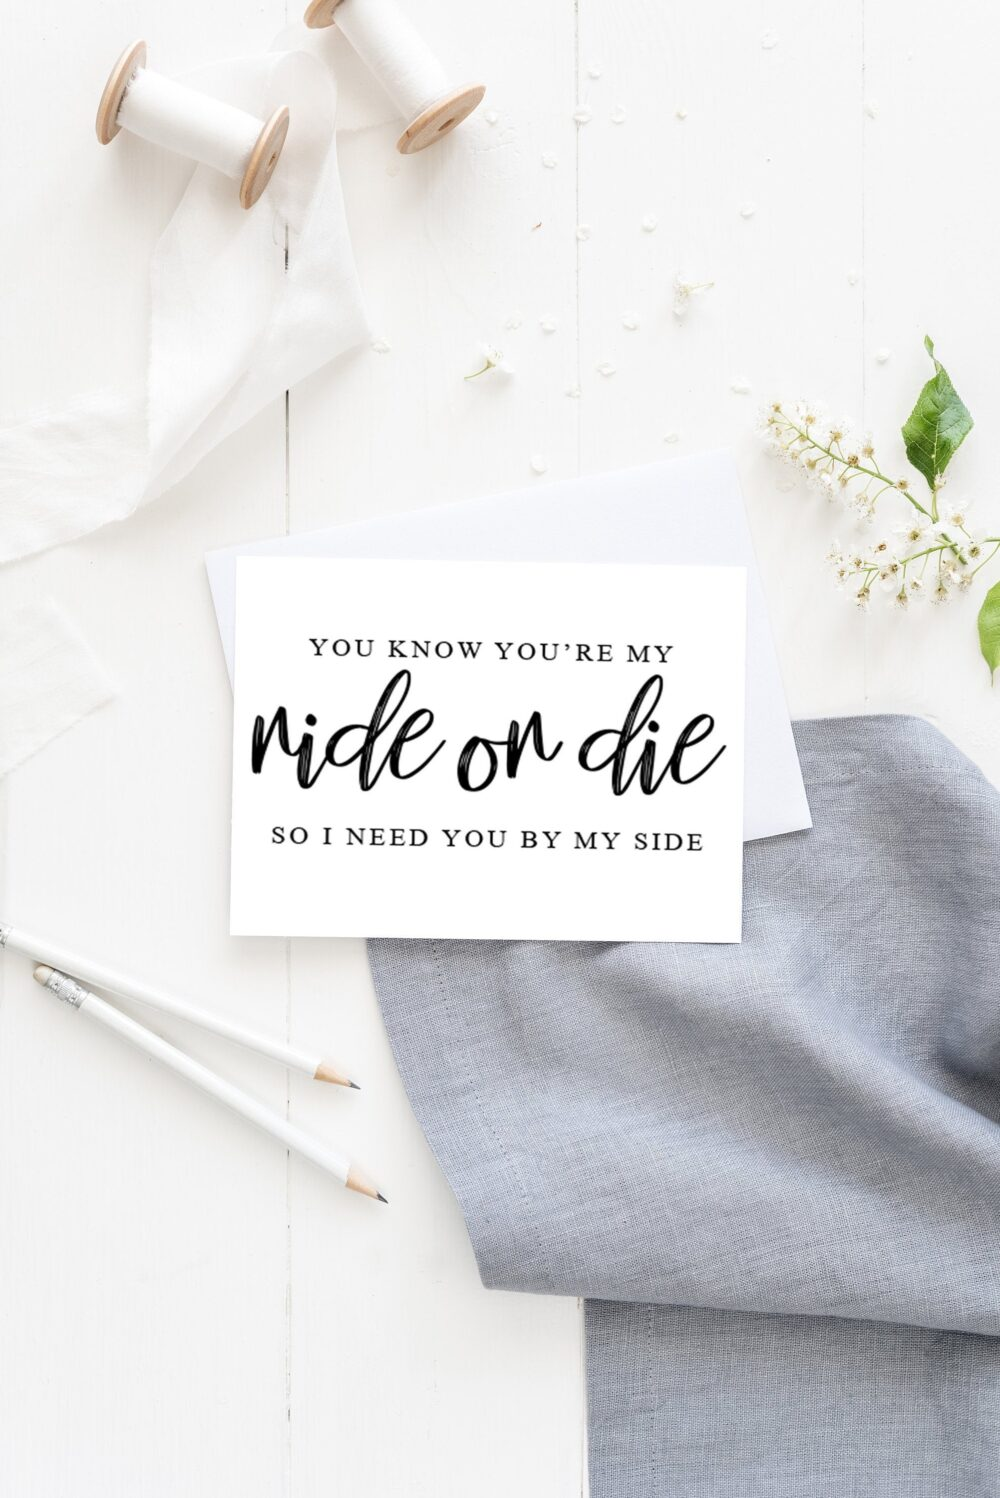 Bridesmaid Proposal Card, You Know You're My Ride Or Die, So I Need By Side, Funny Wedding Will Be